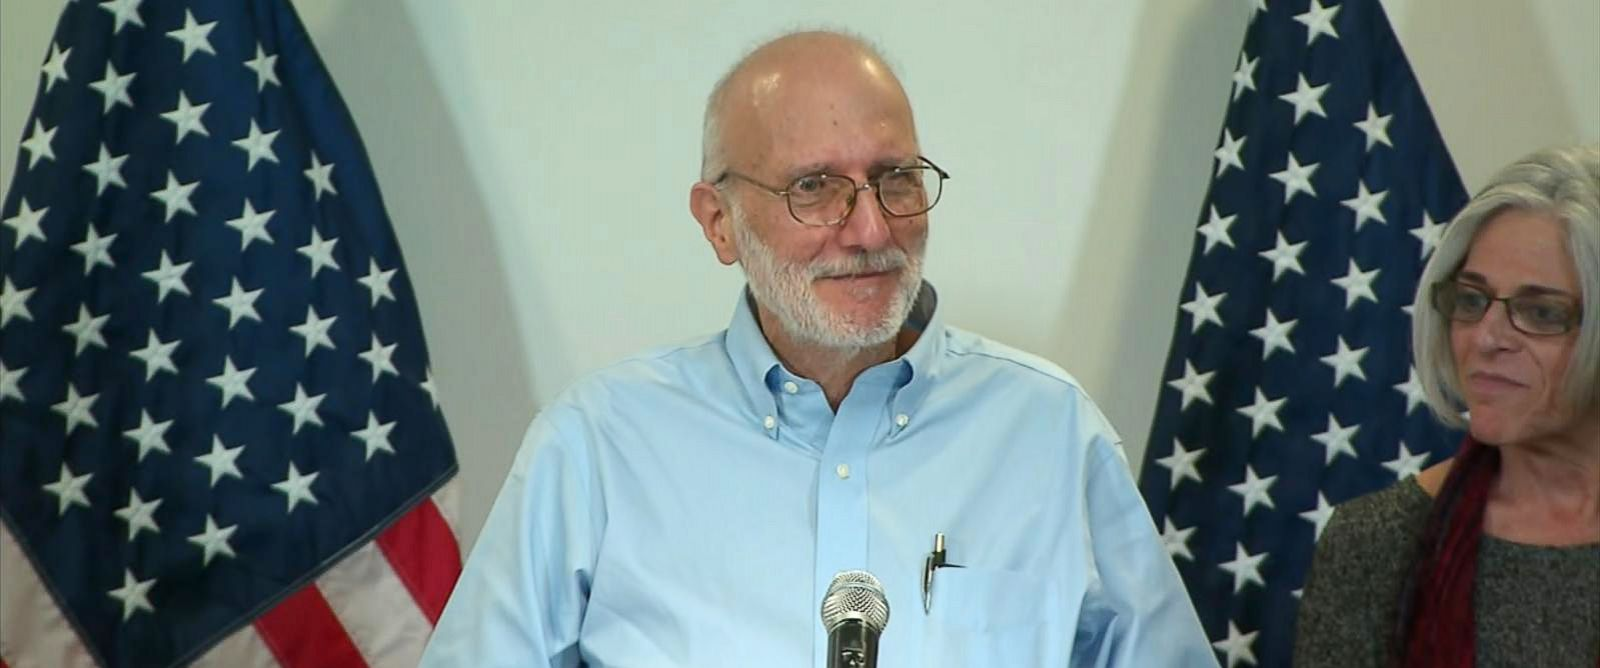 PHOTO: Alan Gross speaks at a press conference at Joint Base Andrews in Md, Dec. 17, 2014.